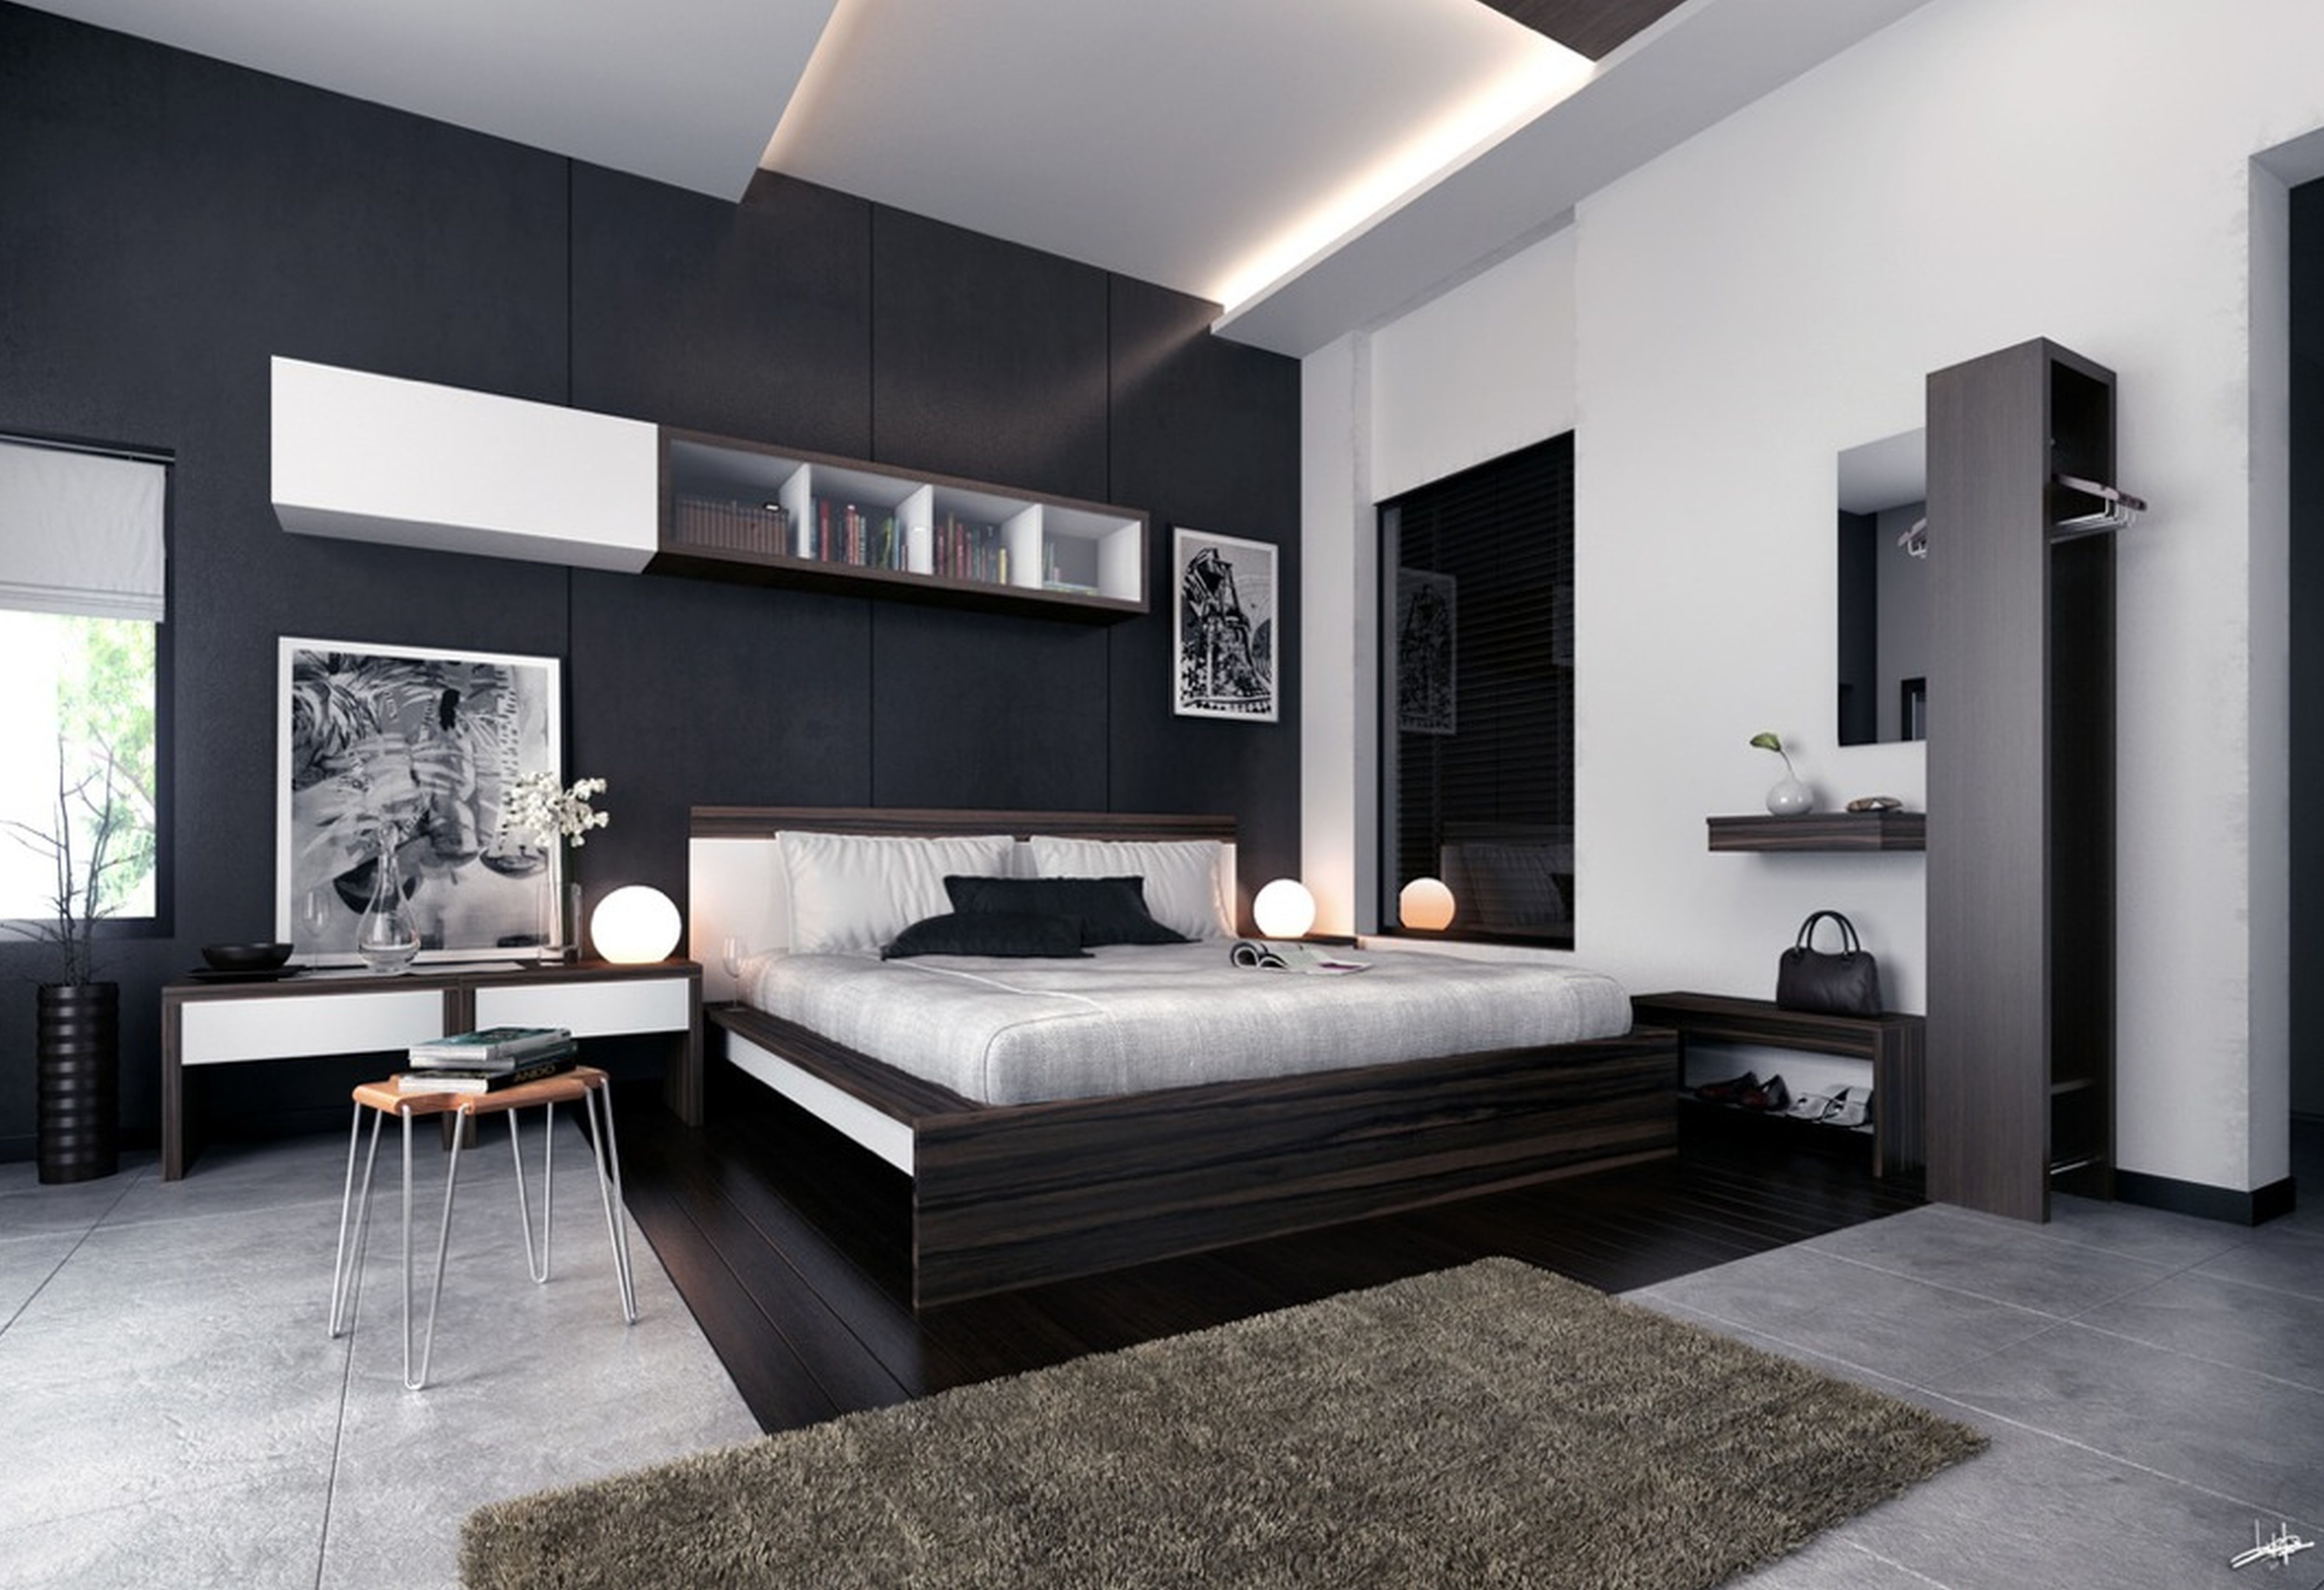 Modern Bedroom Black And White Black And White Modern Decor intended for 15 Some of the Coolest Concepts of How to Makeover Modern White Bedroom Ideas